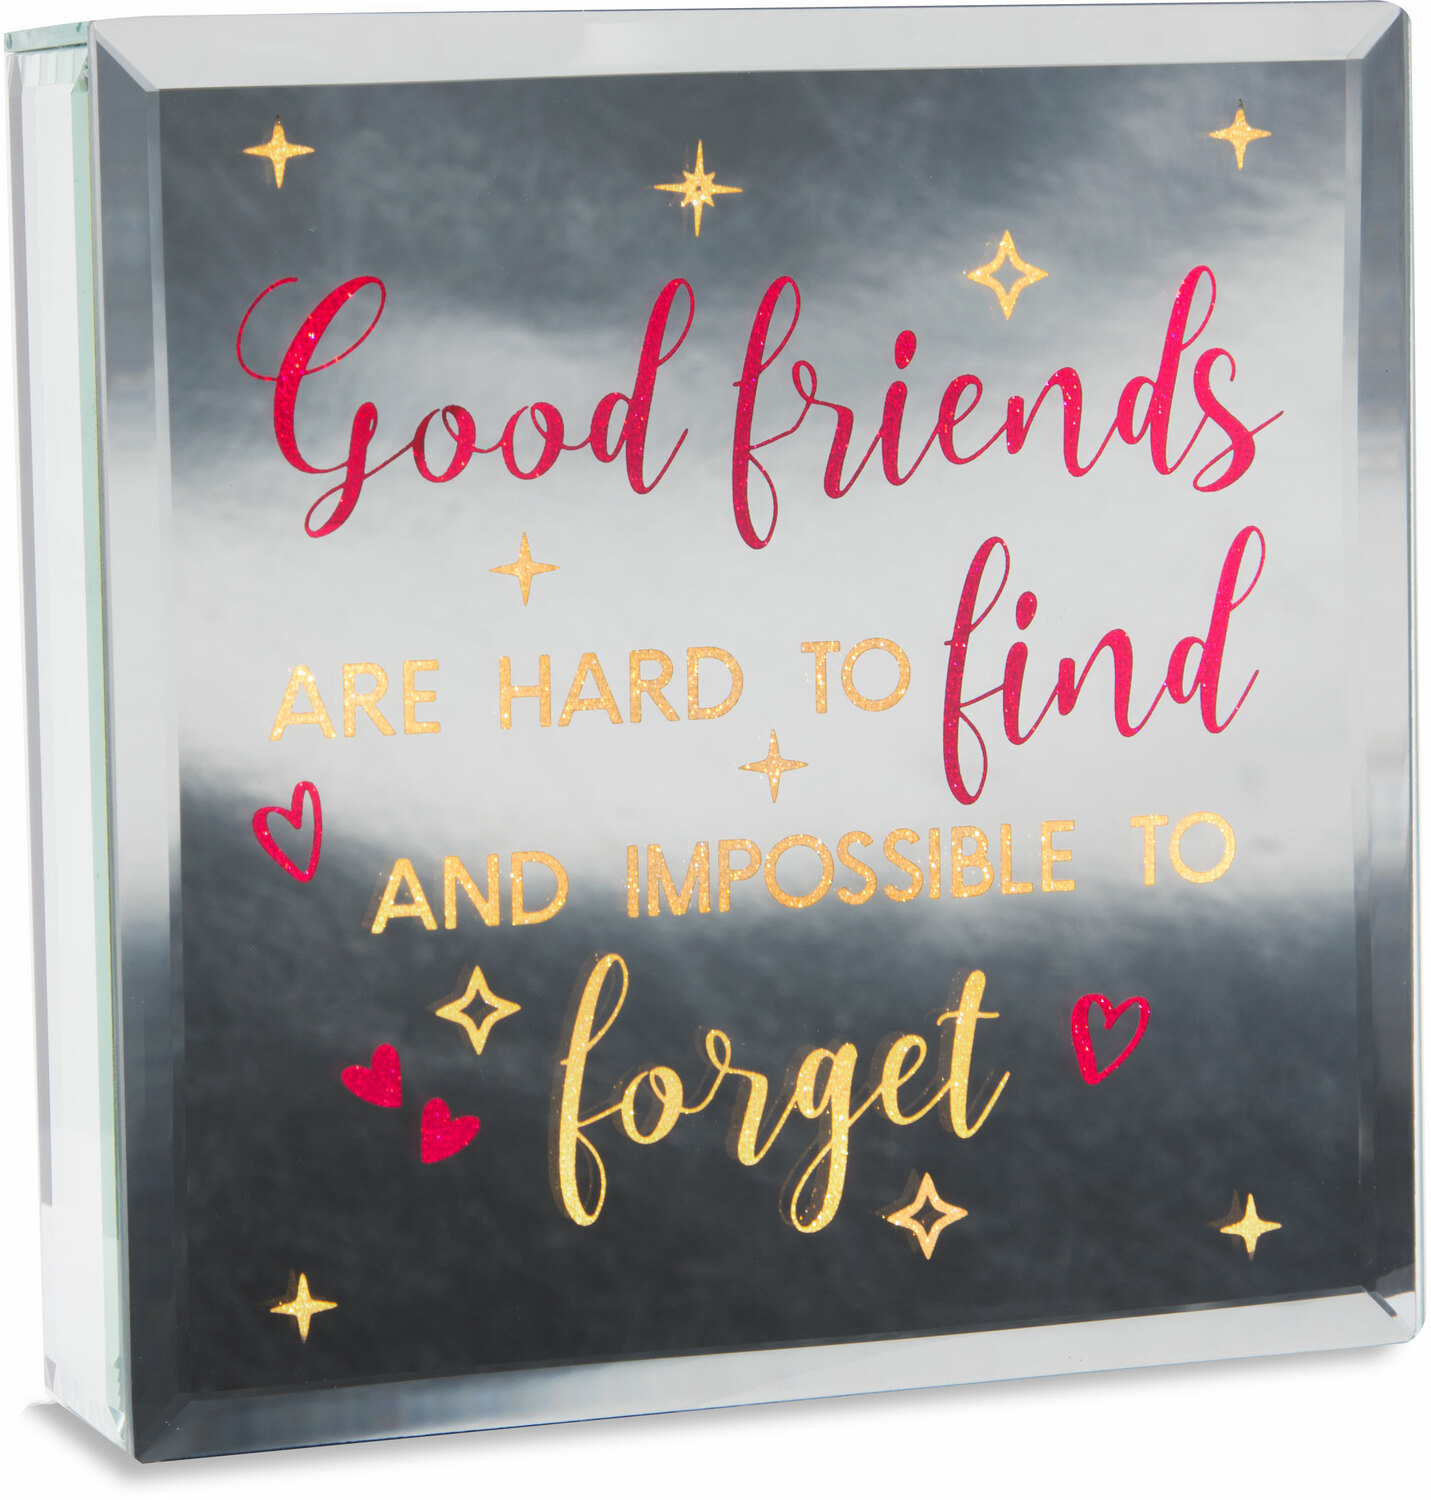 "Good Friends by Reflections of You - Good Friends - 6"" Lit-Mirrored Plaque"